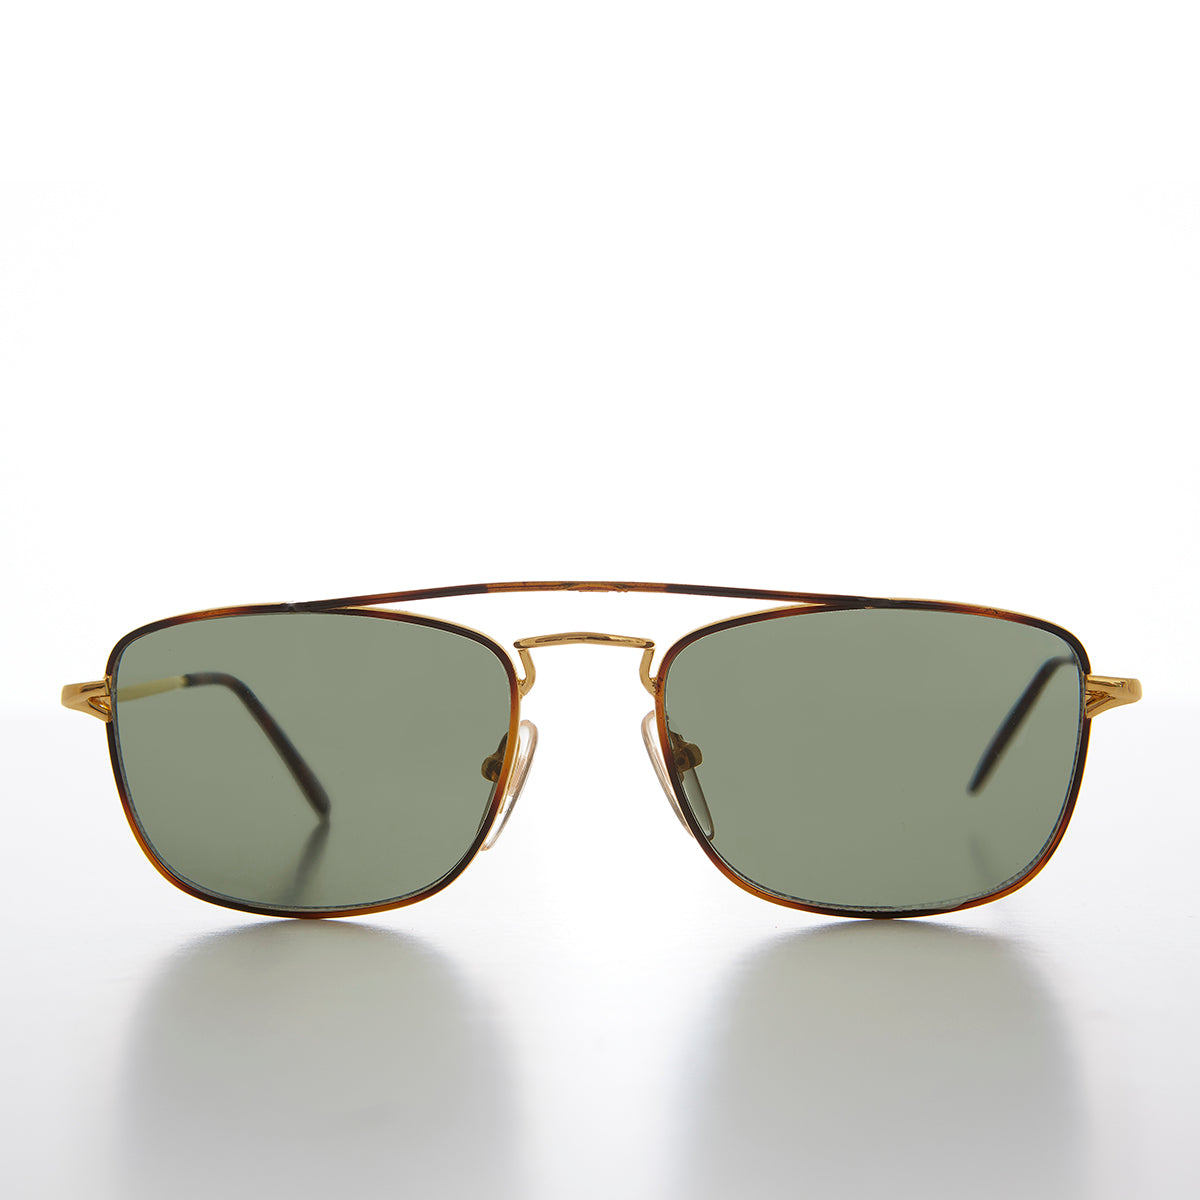 Gold Square Vintage Aviator Sunglass